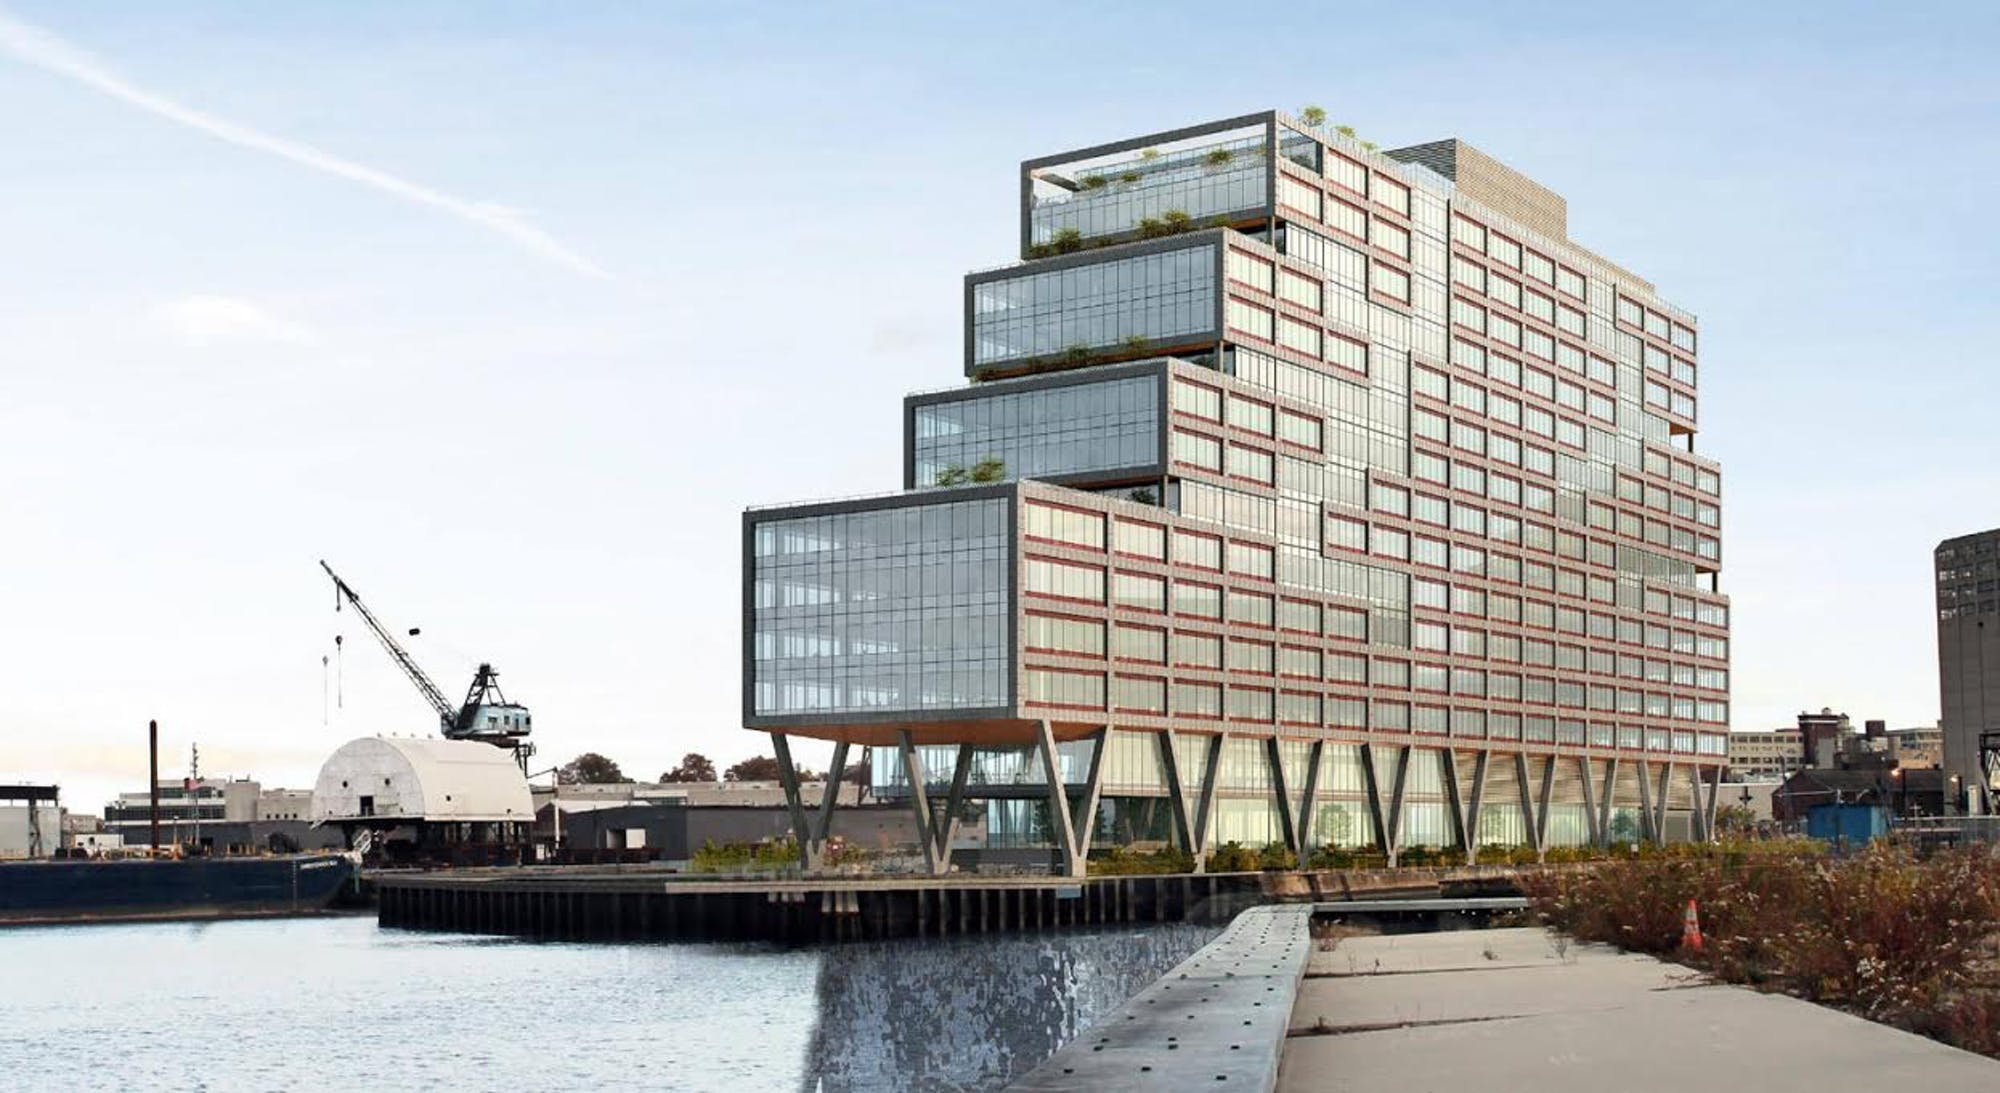 WeWork Dock 72 at the Brooklyn Navy Yard, NYC